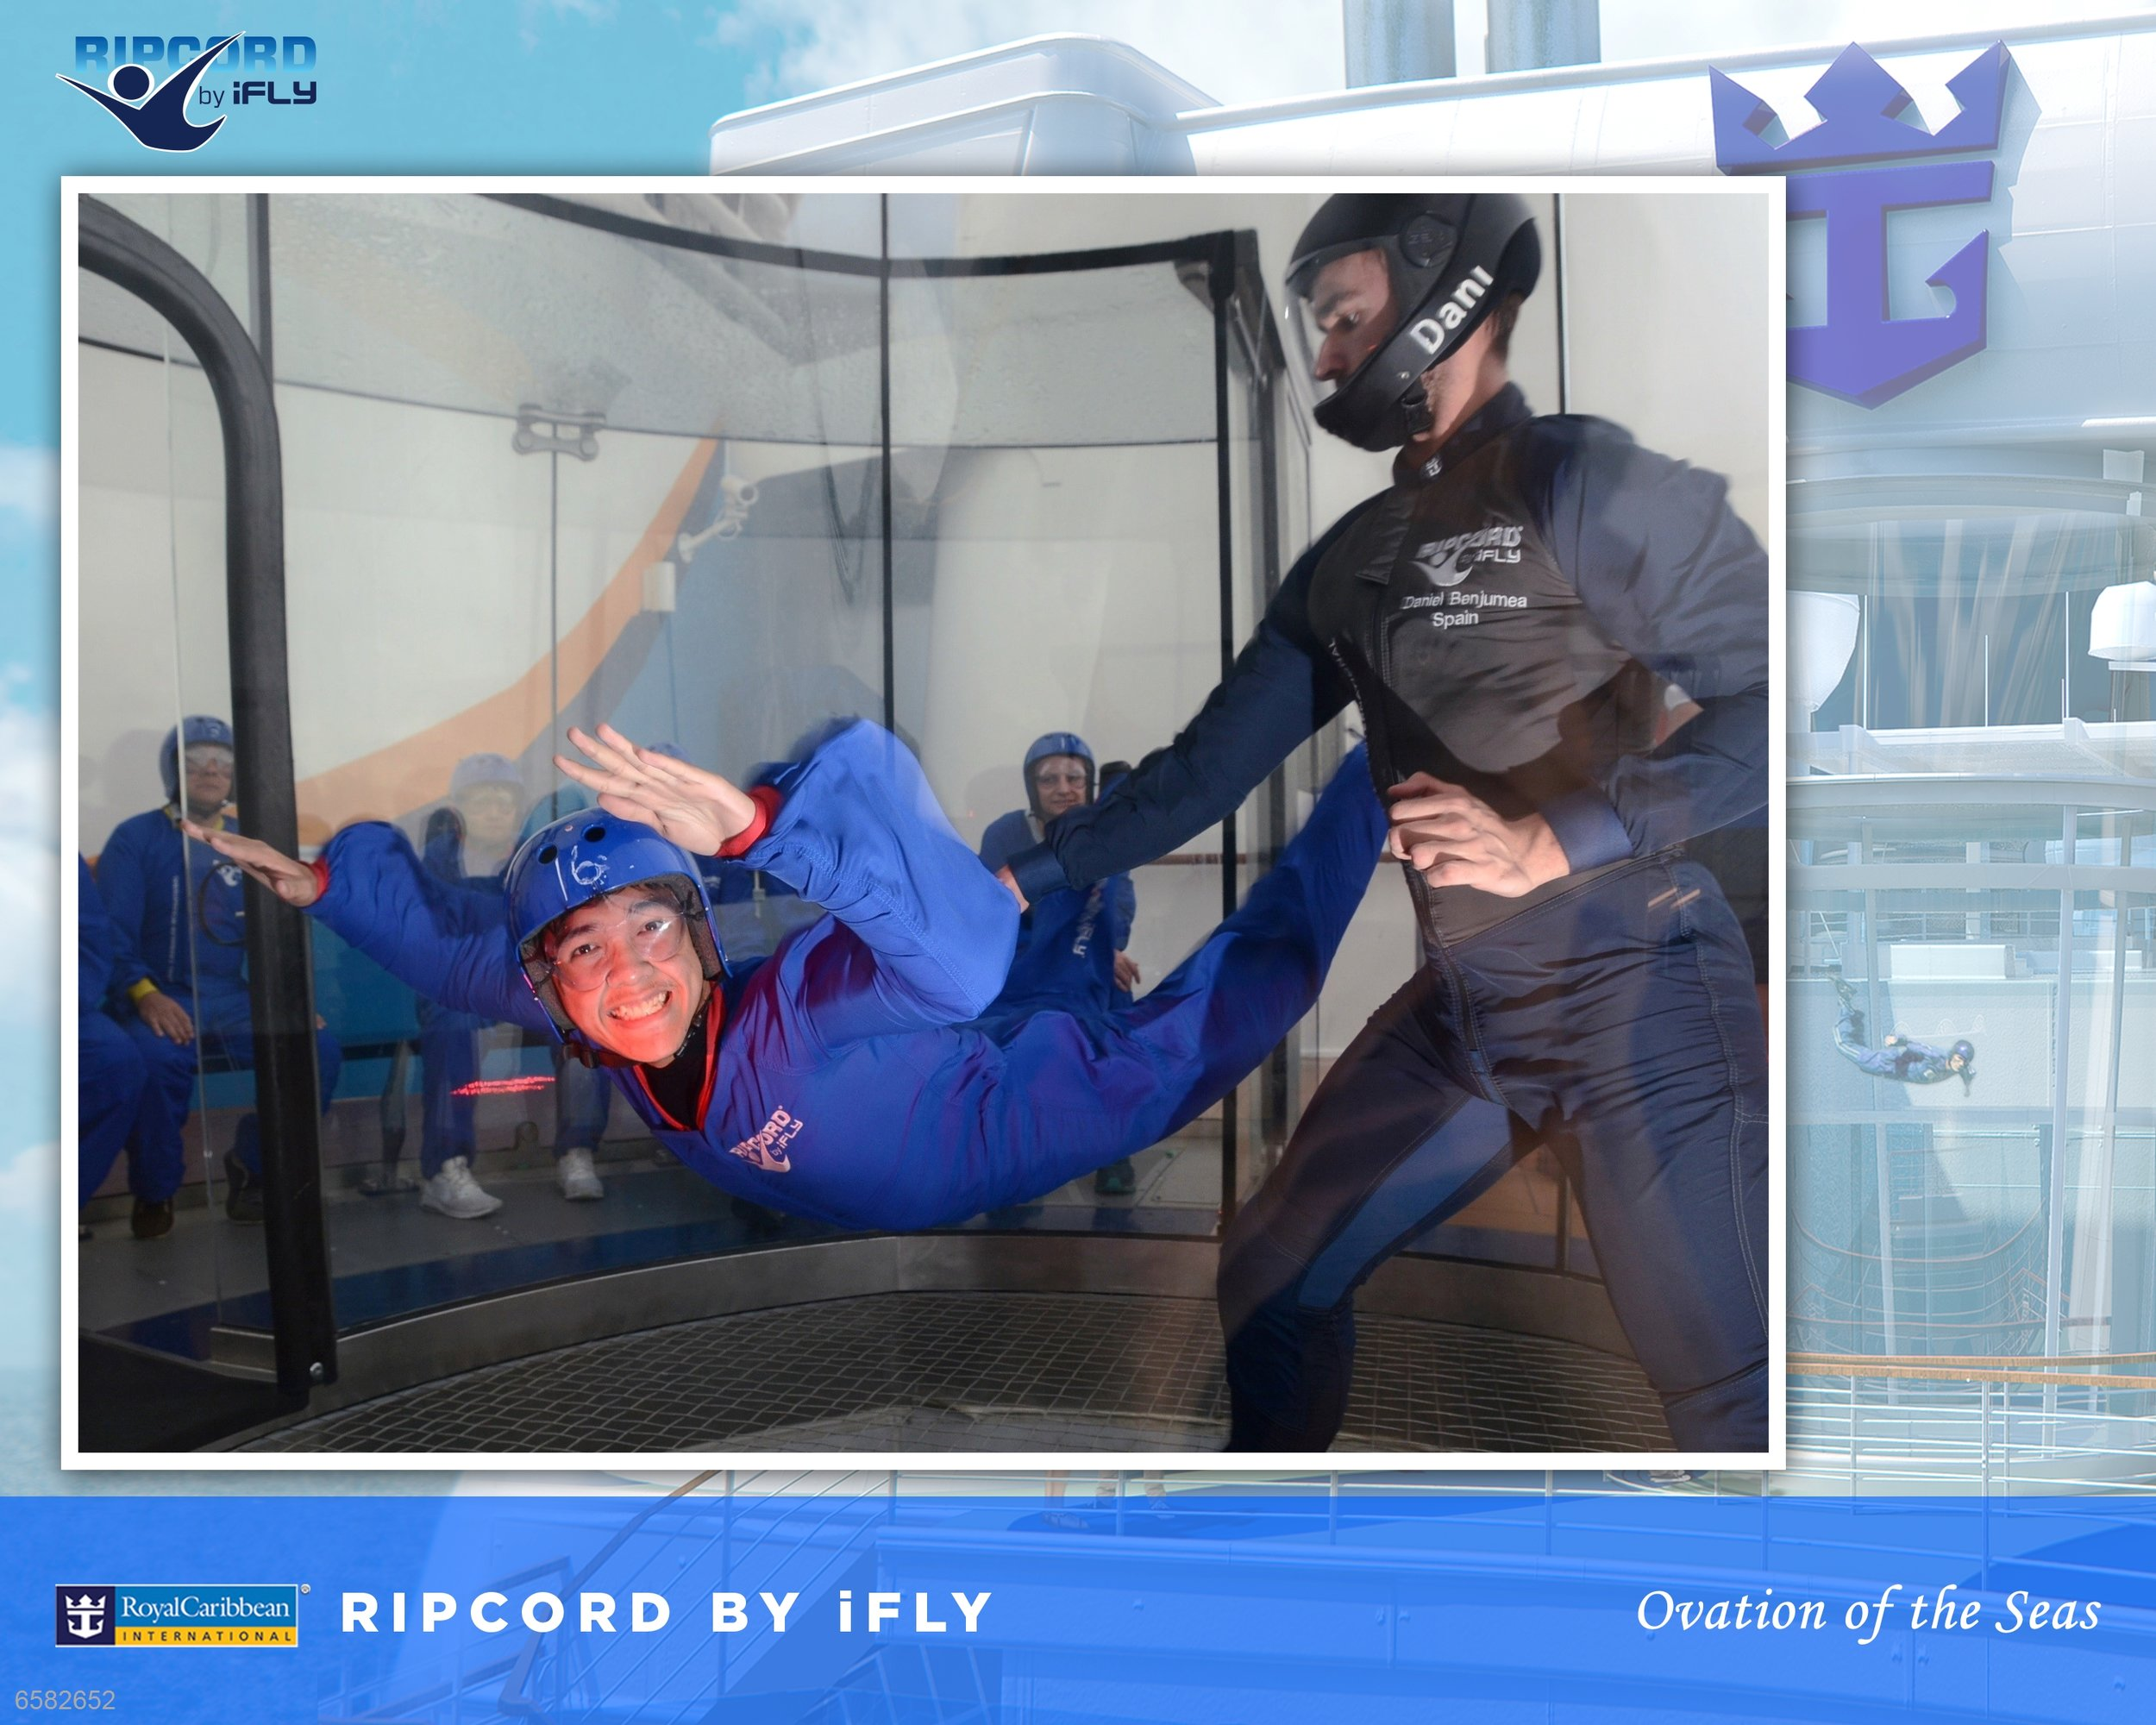 RIPCORD BY iFly - DECK 15 AFT